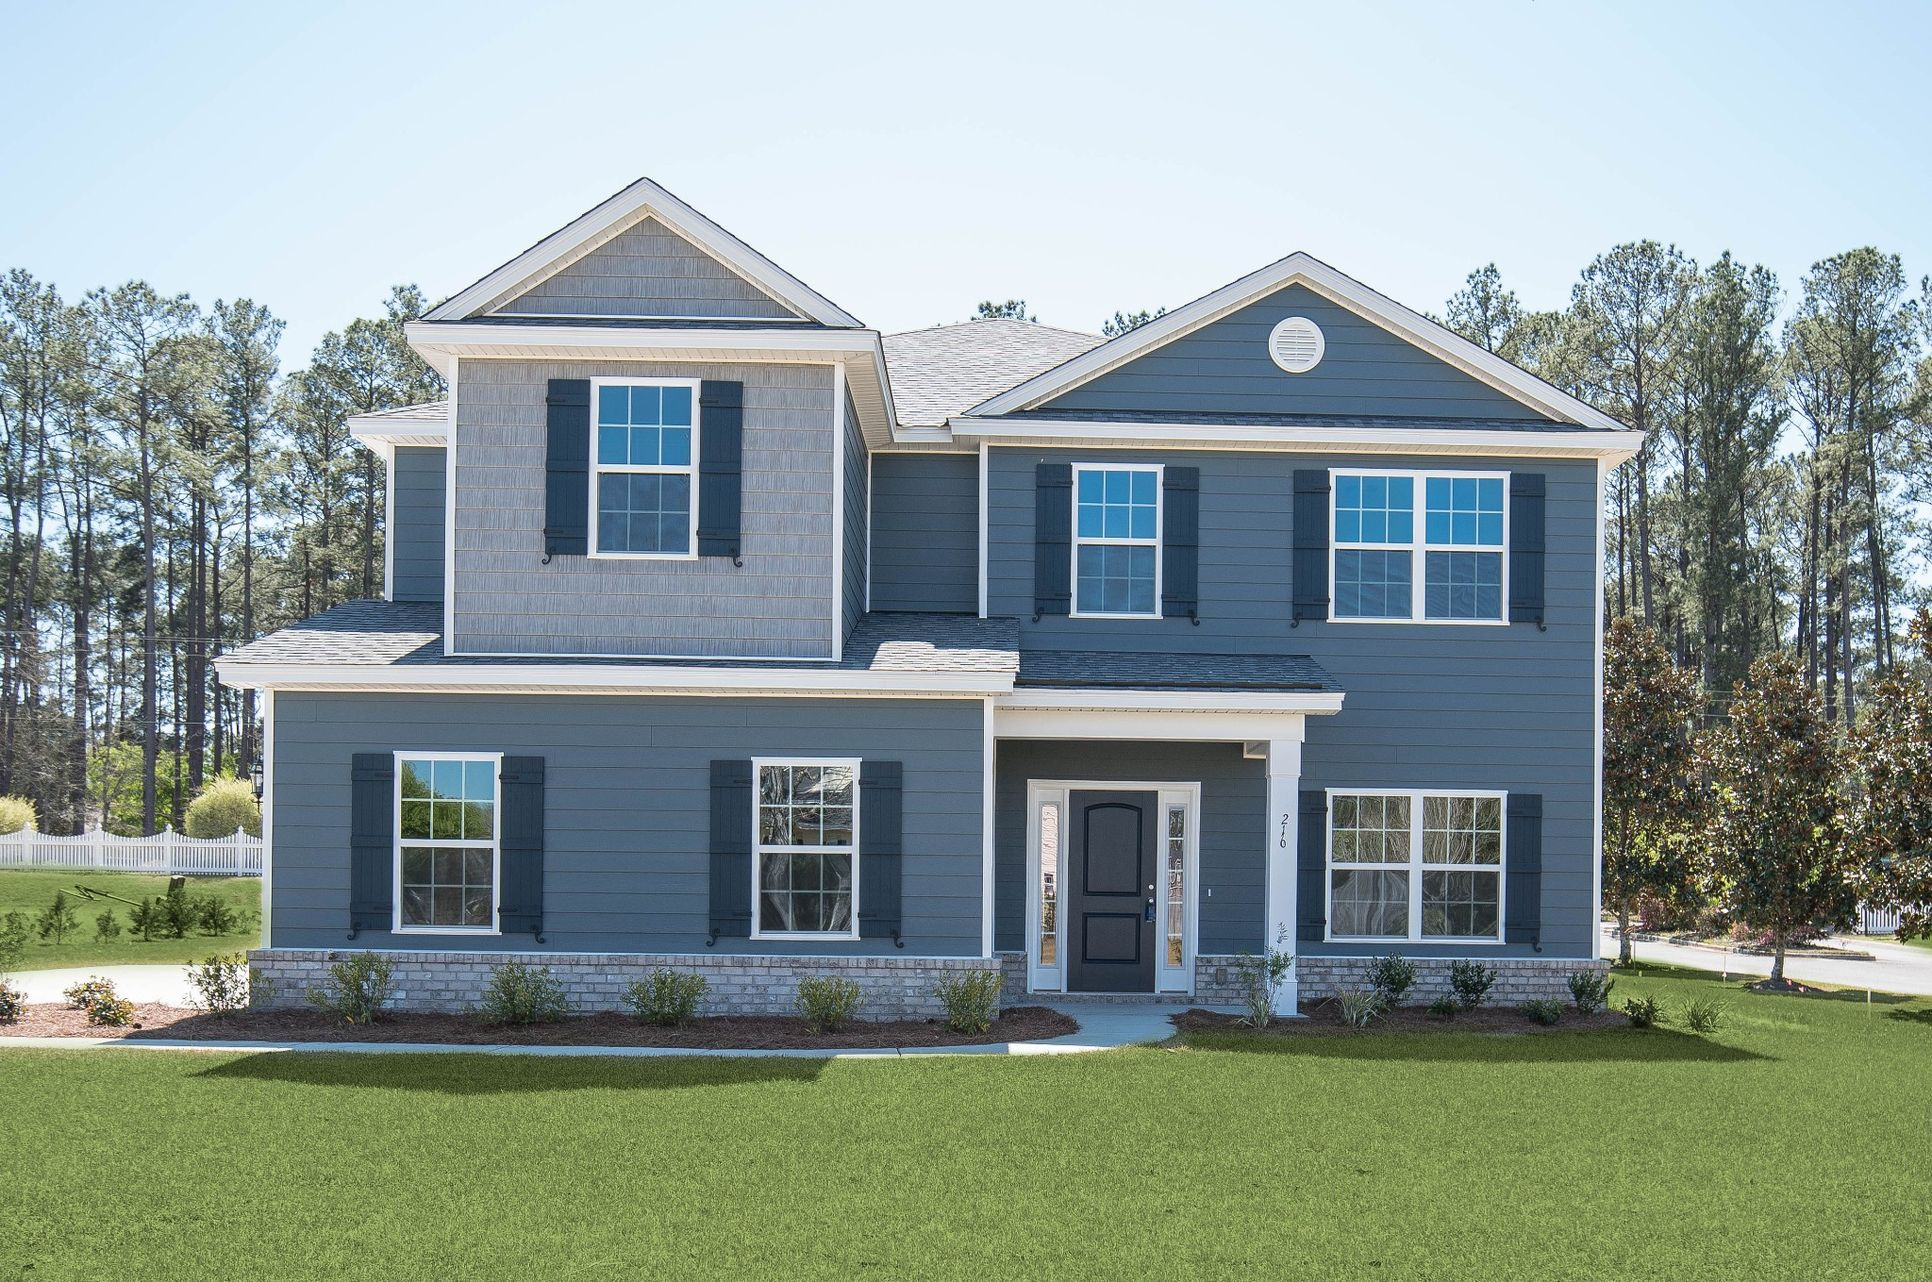 Elevation B with side entry garage and Hardieboard siding per community standards:Nantucket Signature